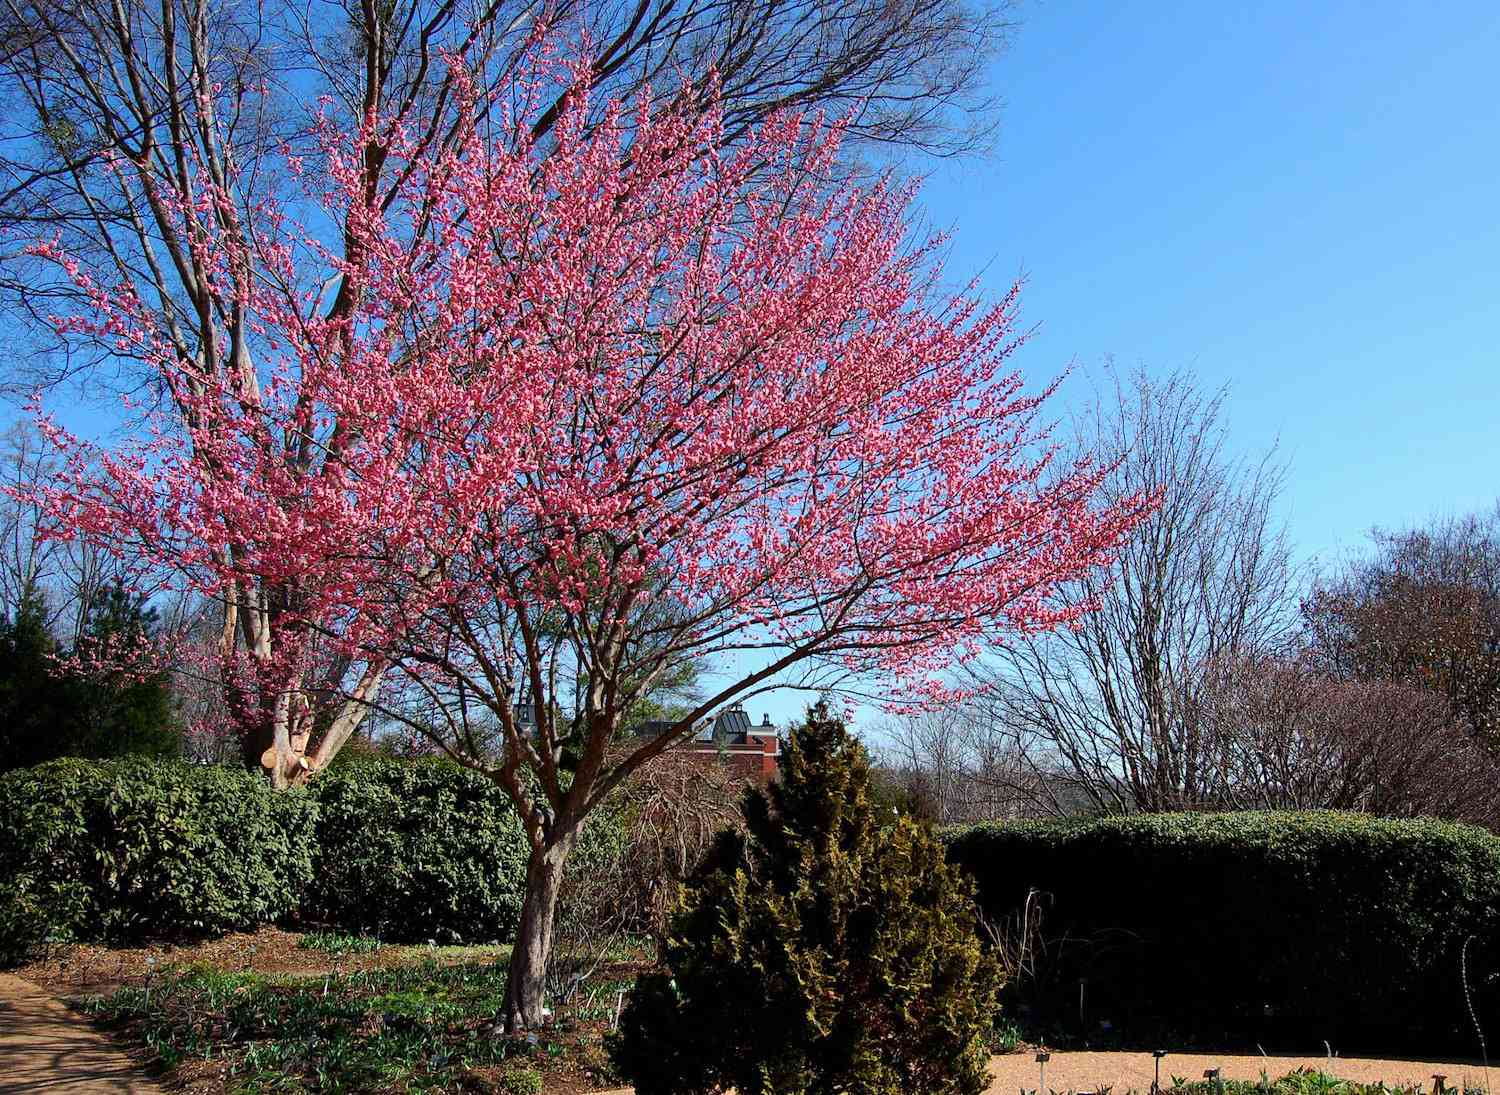 A small Japanese apricot tree in full bloom of pink against a bright blue sky